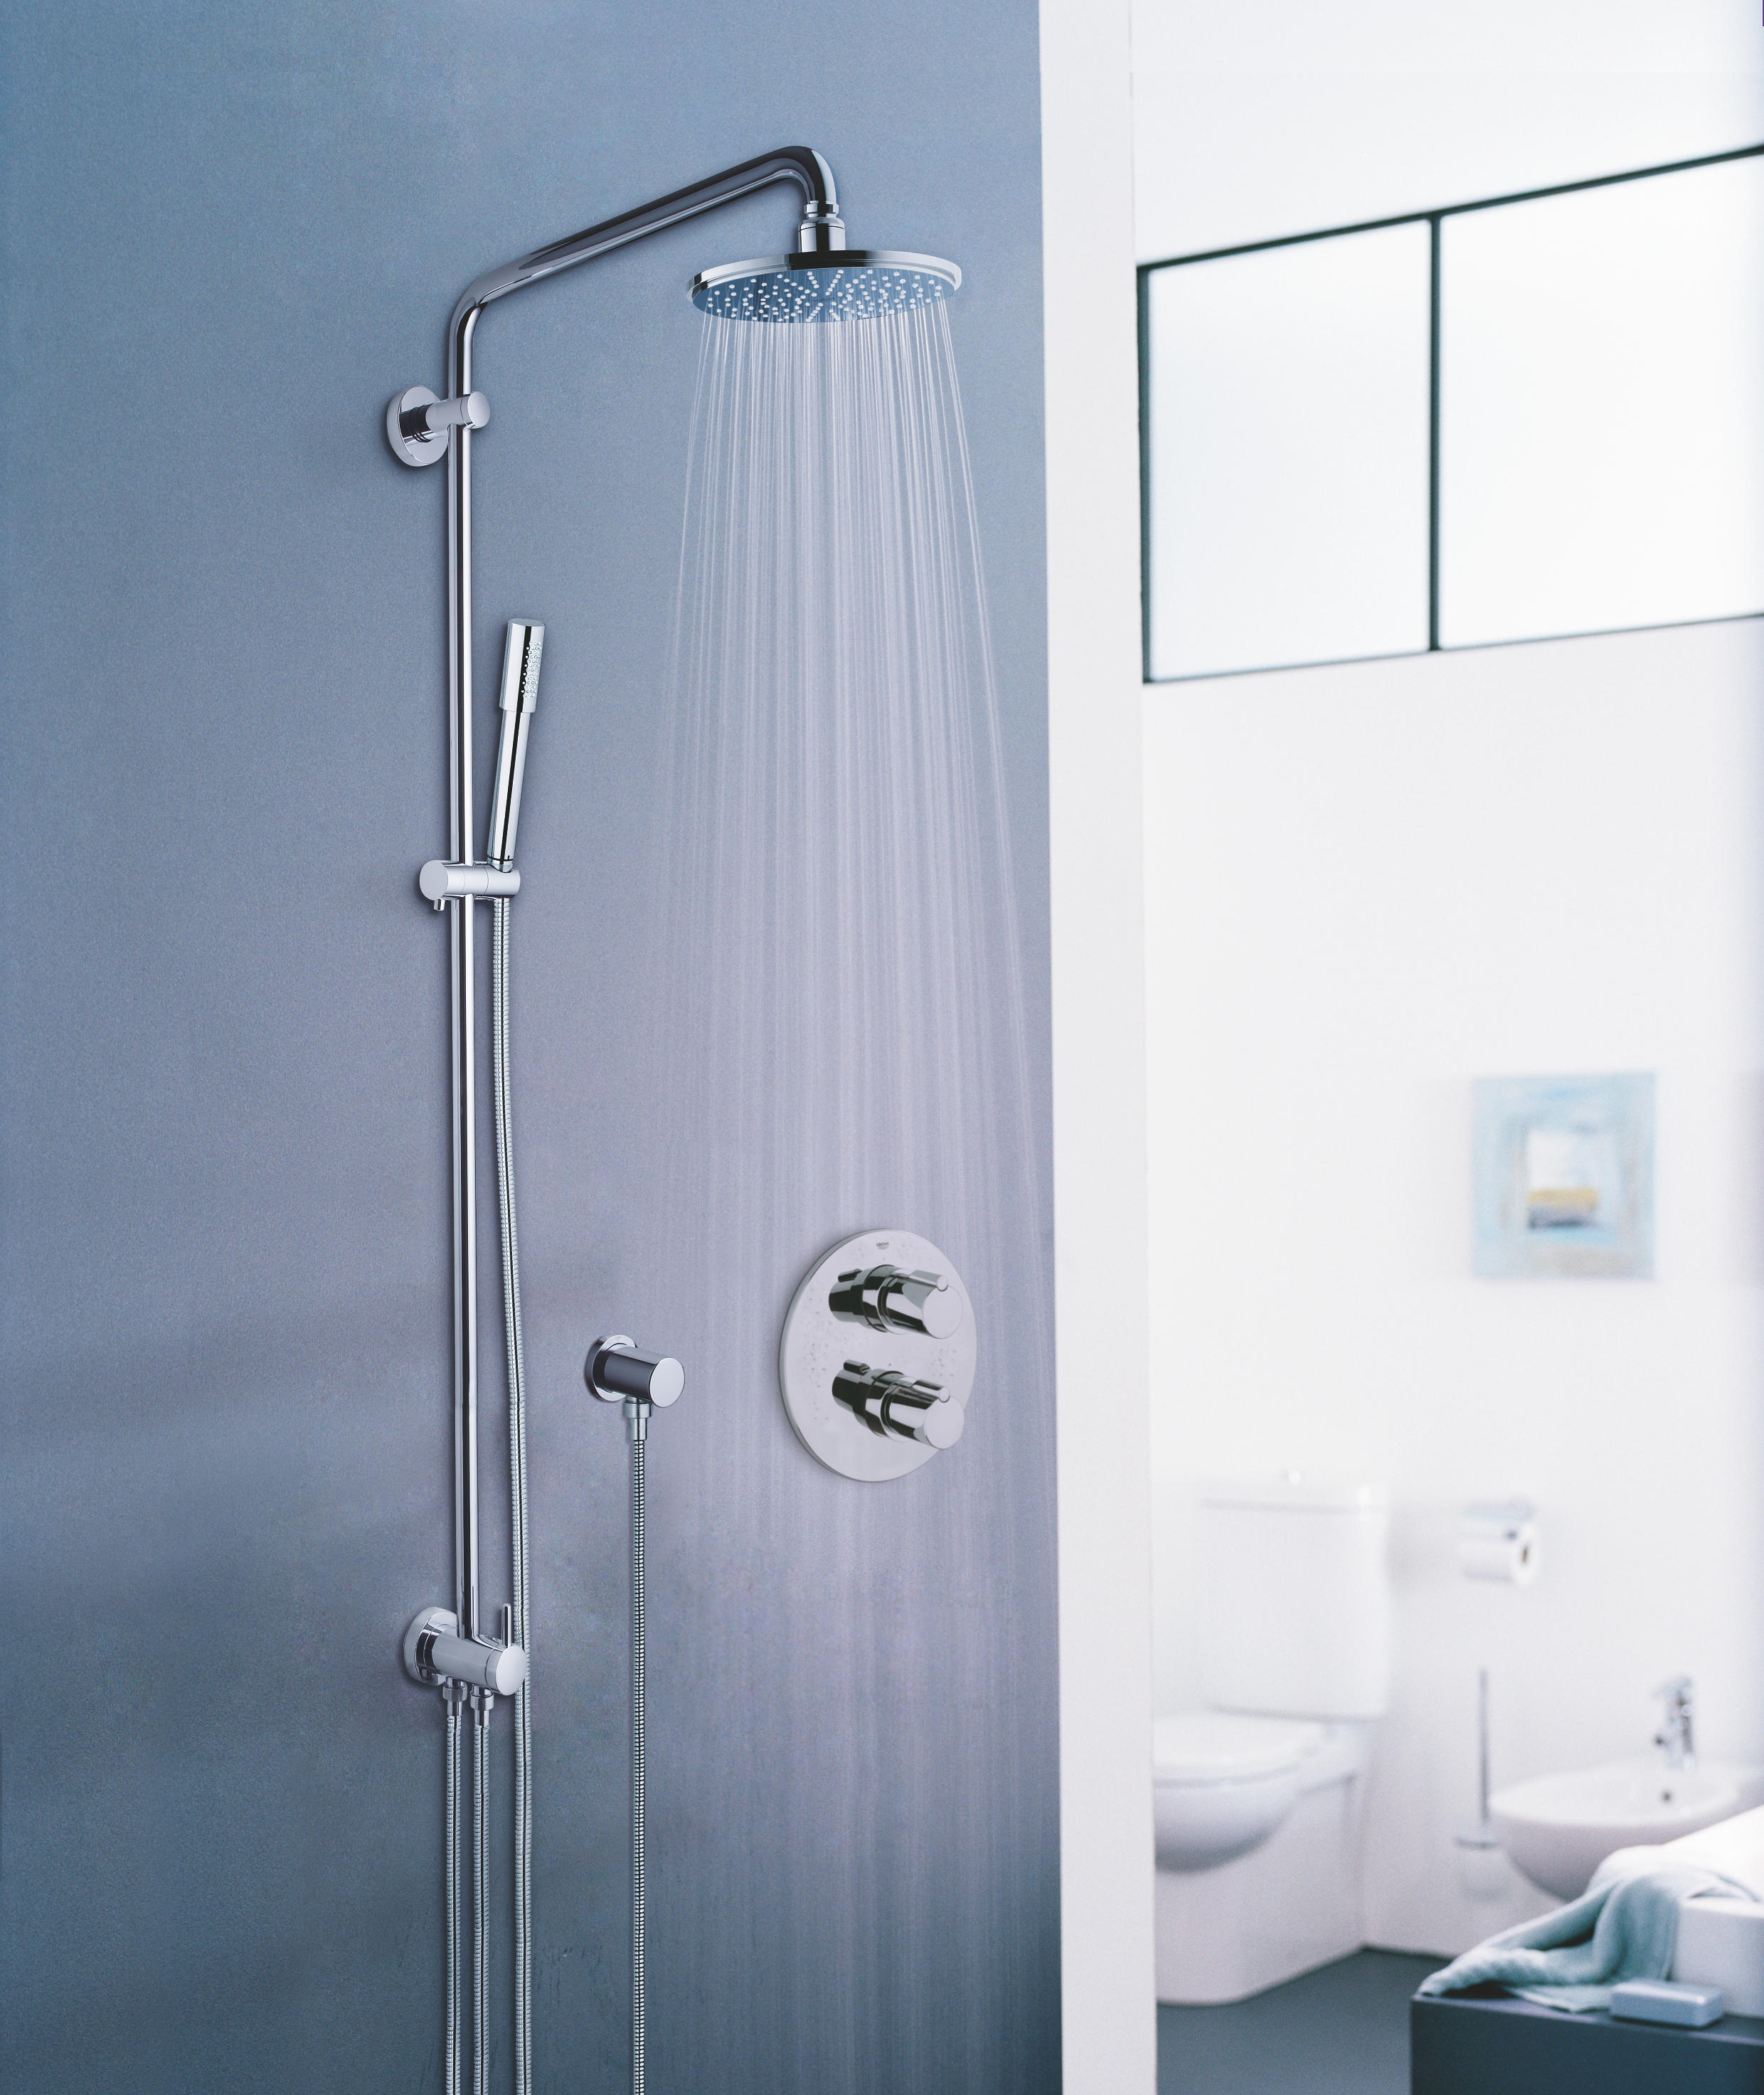 grohe system mit rainshower thermostatbatterie f pin r duschsystem shower wandmontage